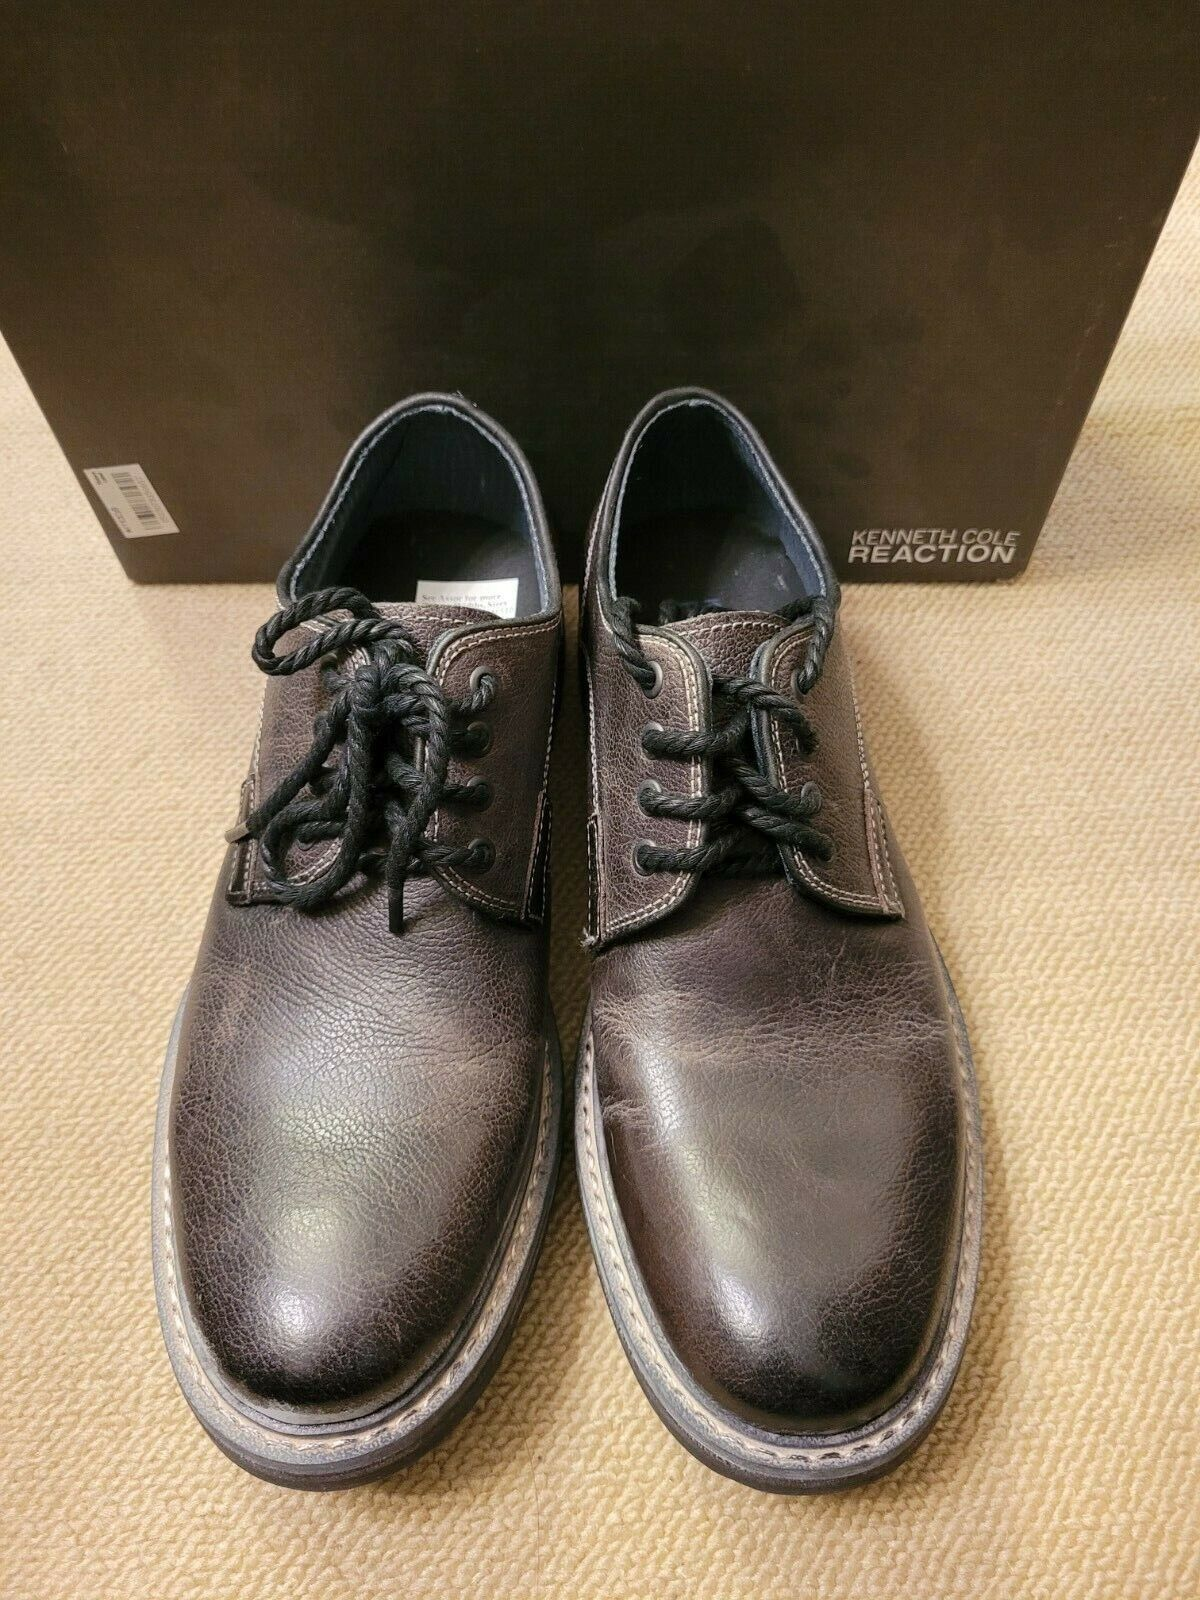 Kenneth Cole Reaction men's leather shoes brand new size 7